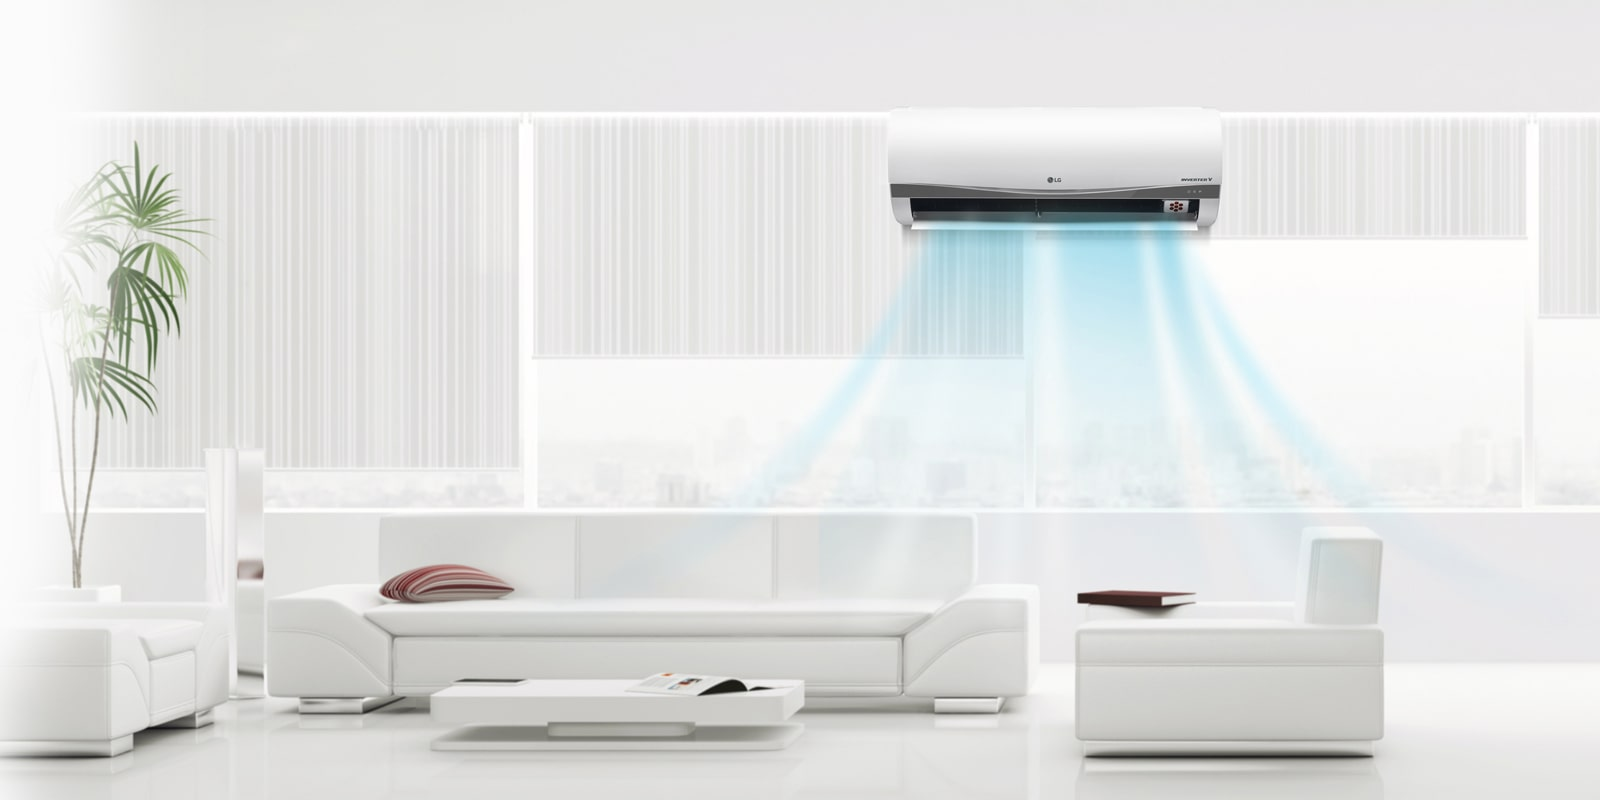 LG Home Air Conditioners